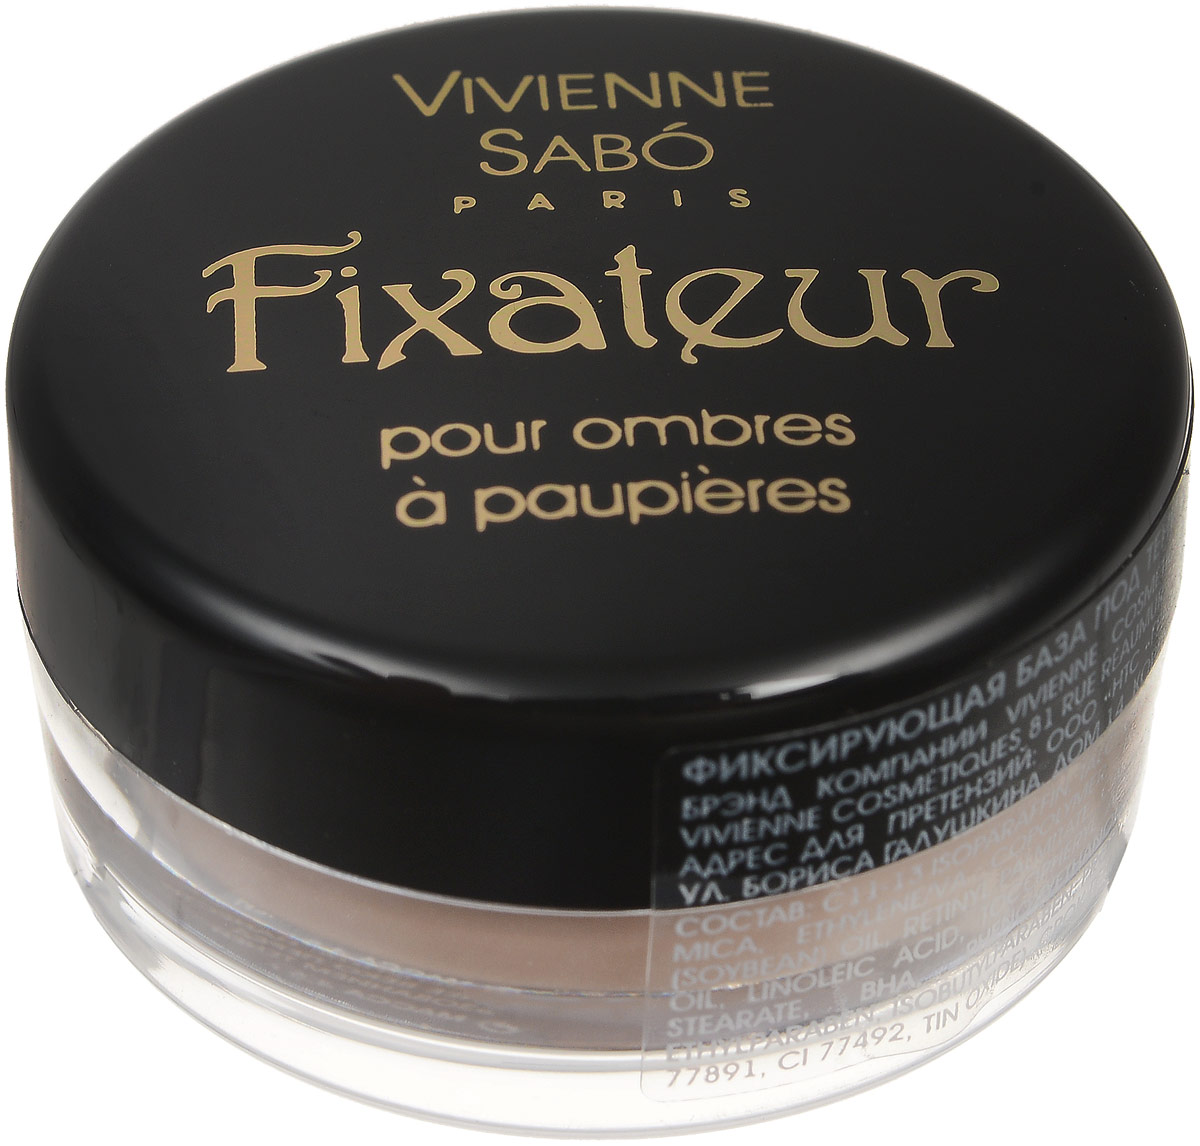 Фиксирующая база под тени для век/Fixing eyeshadow base/Fixateur pour ombres a paupieres FixateurD215225001_